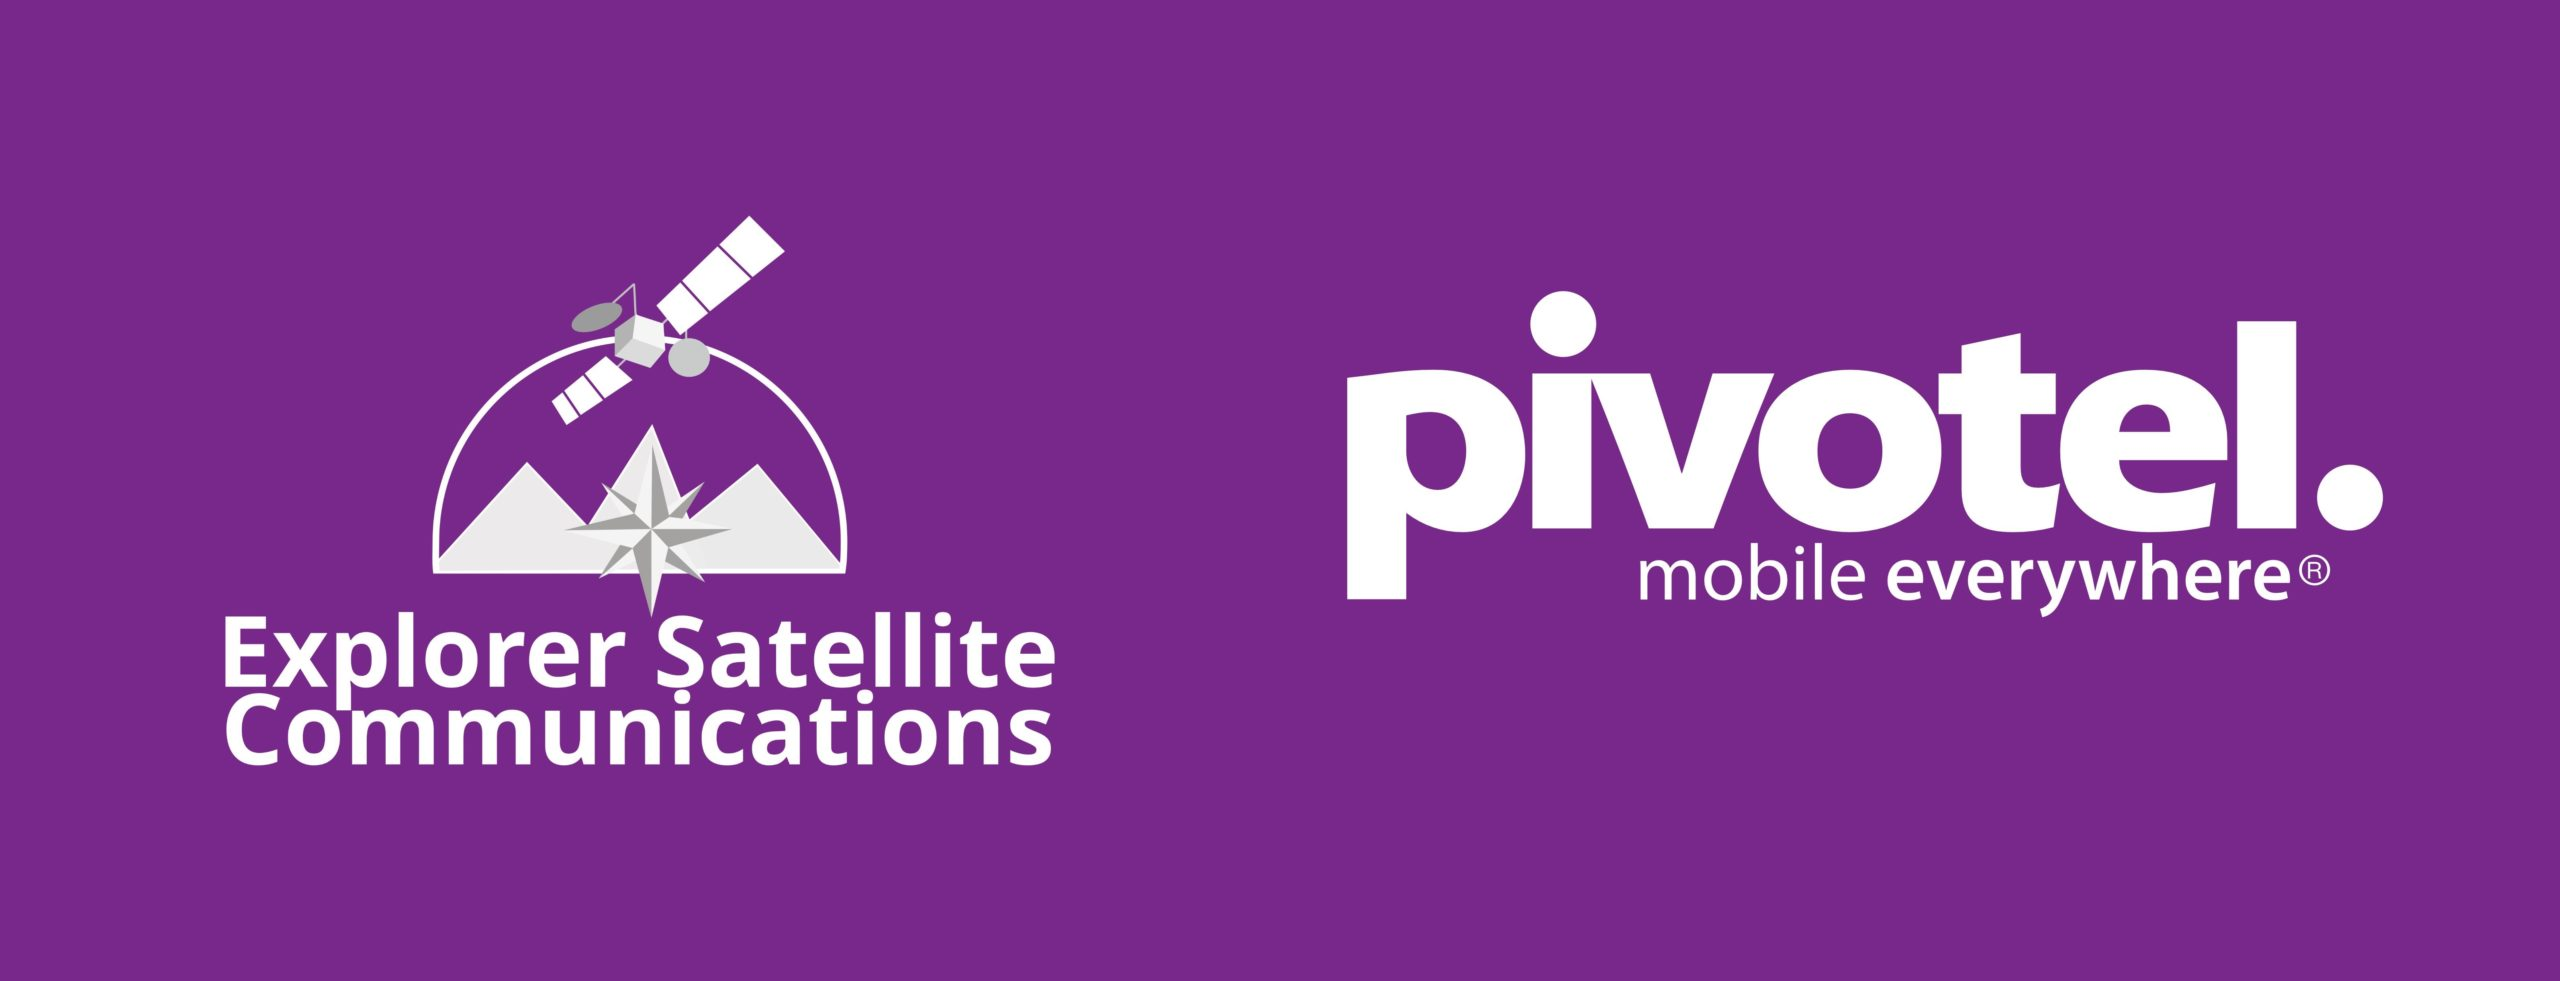 Explorer Satellite is now Pivotel